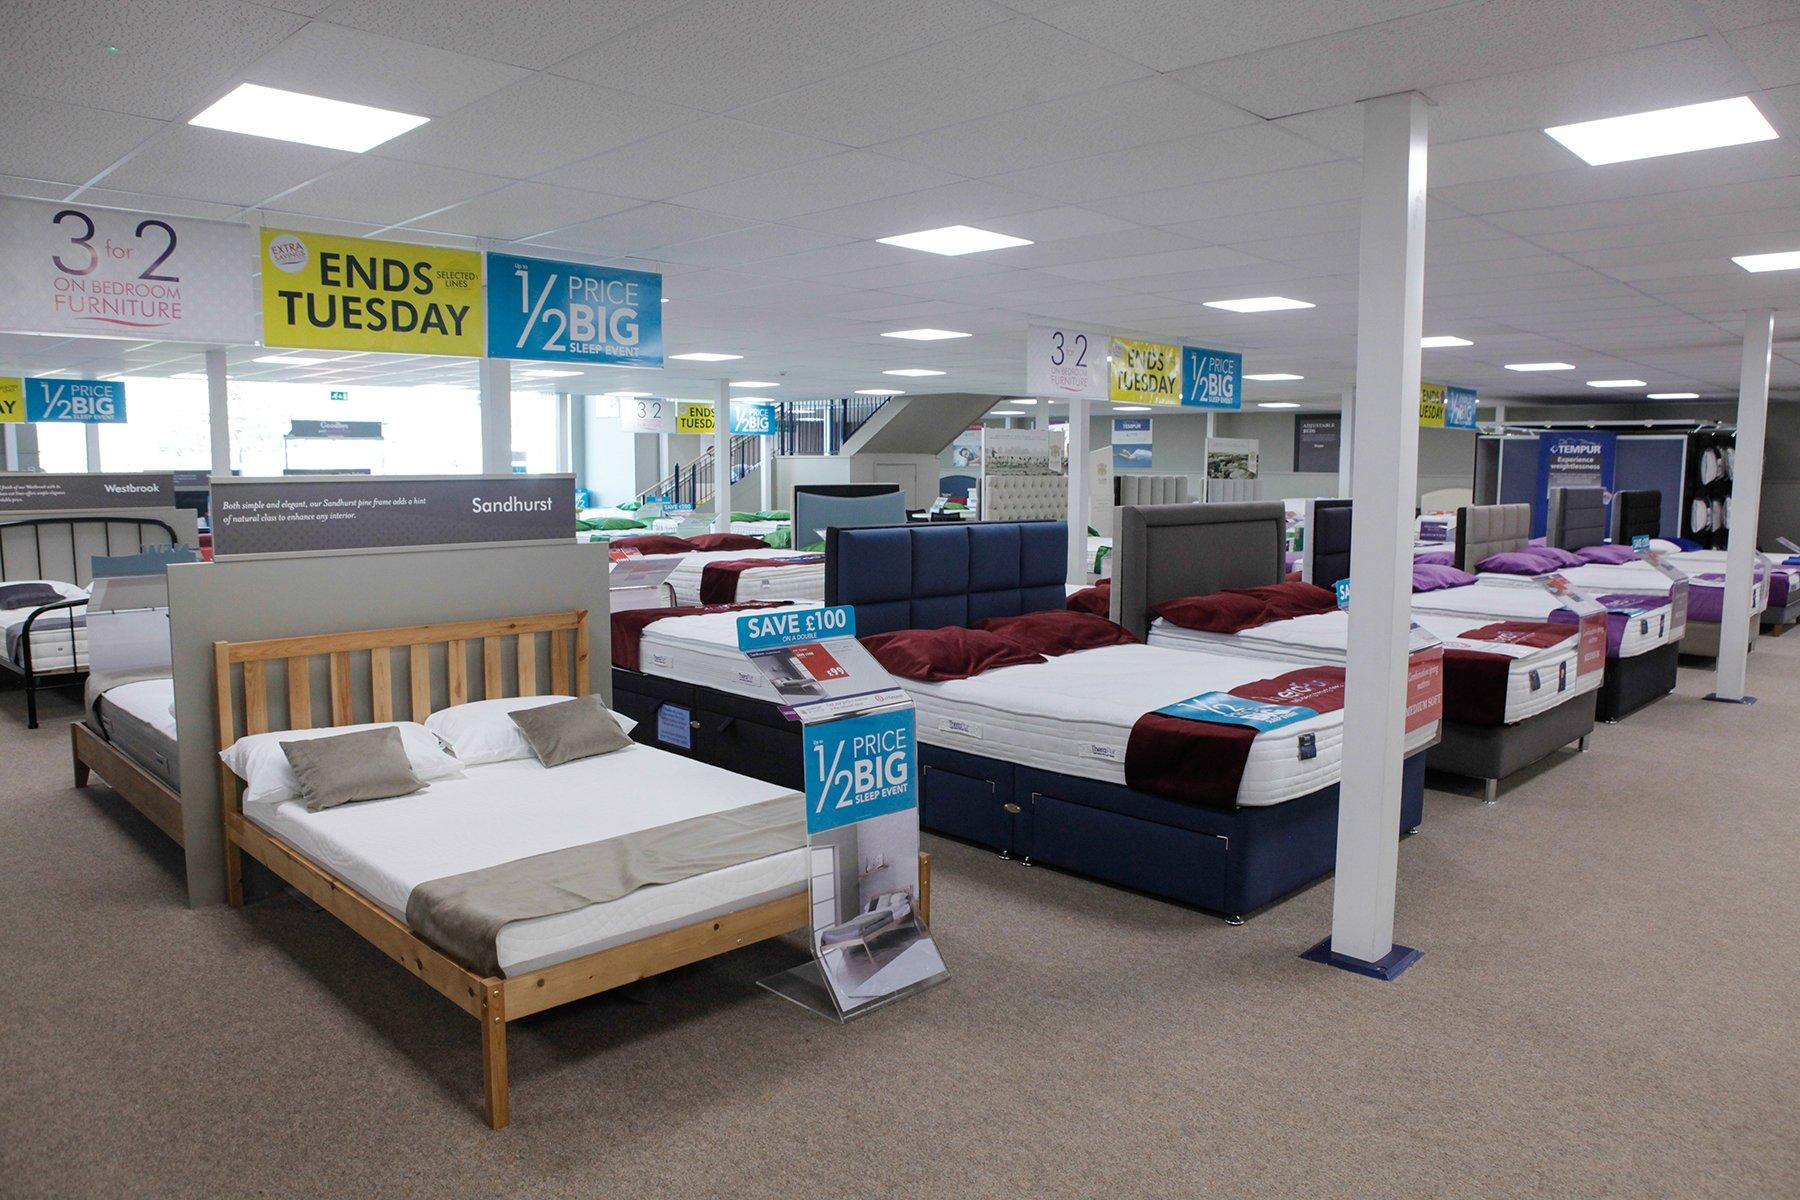 Dreams Store In Caerphilly Beds Mattresses Furniture